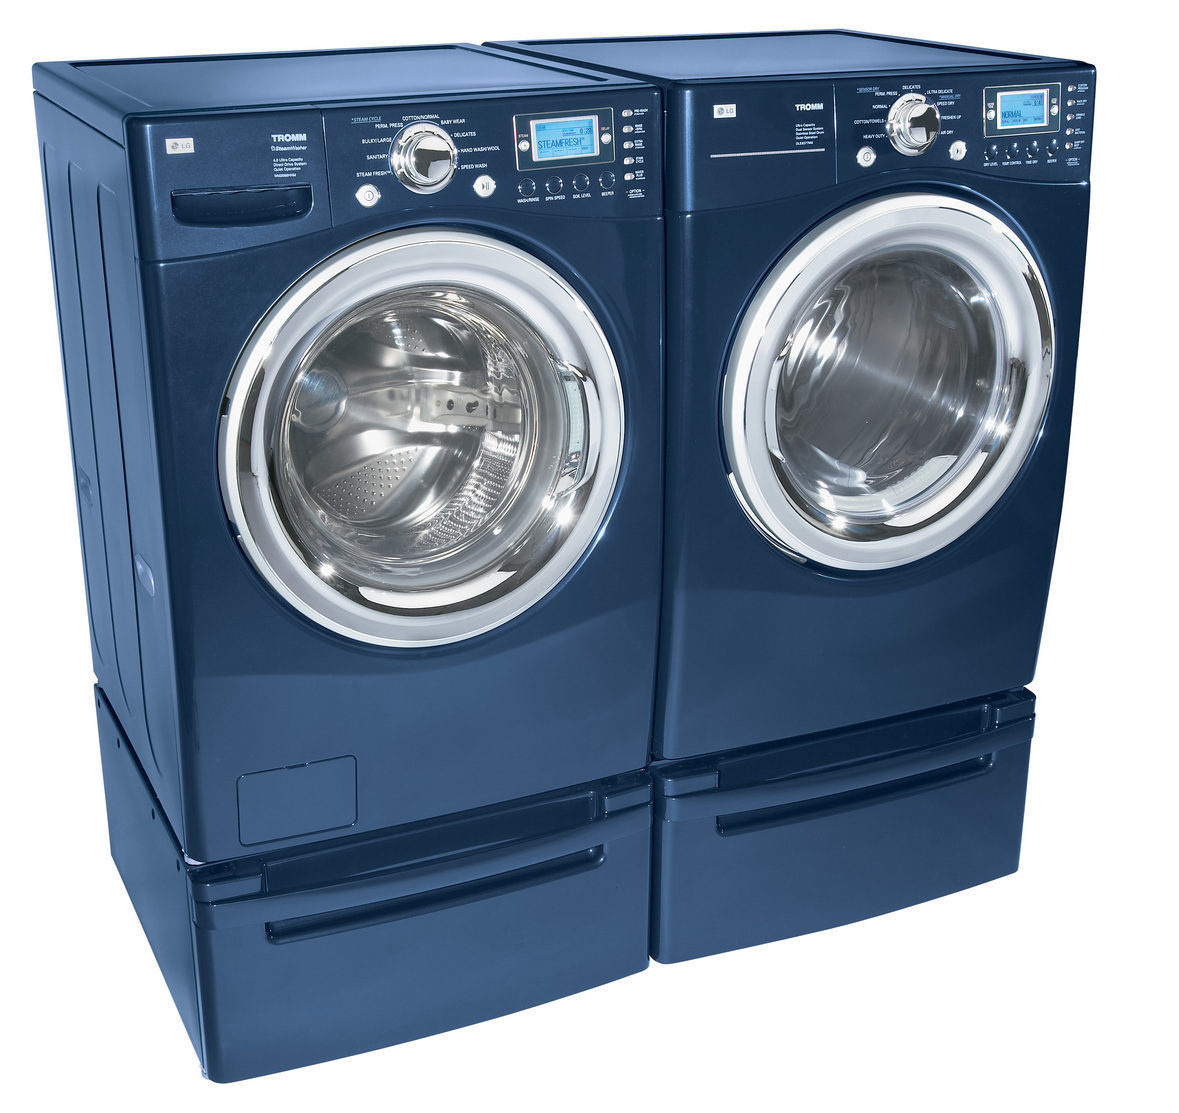 Whirlpool Maytag Washing Machine And Dishwasher Recalls Clothes Dryer Wiring Questiondryer002jpg